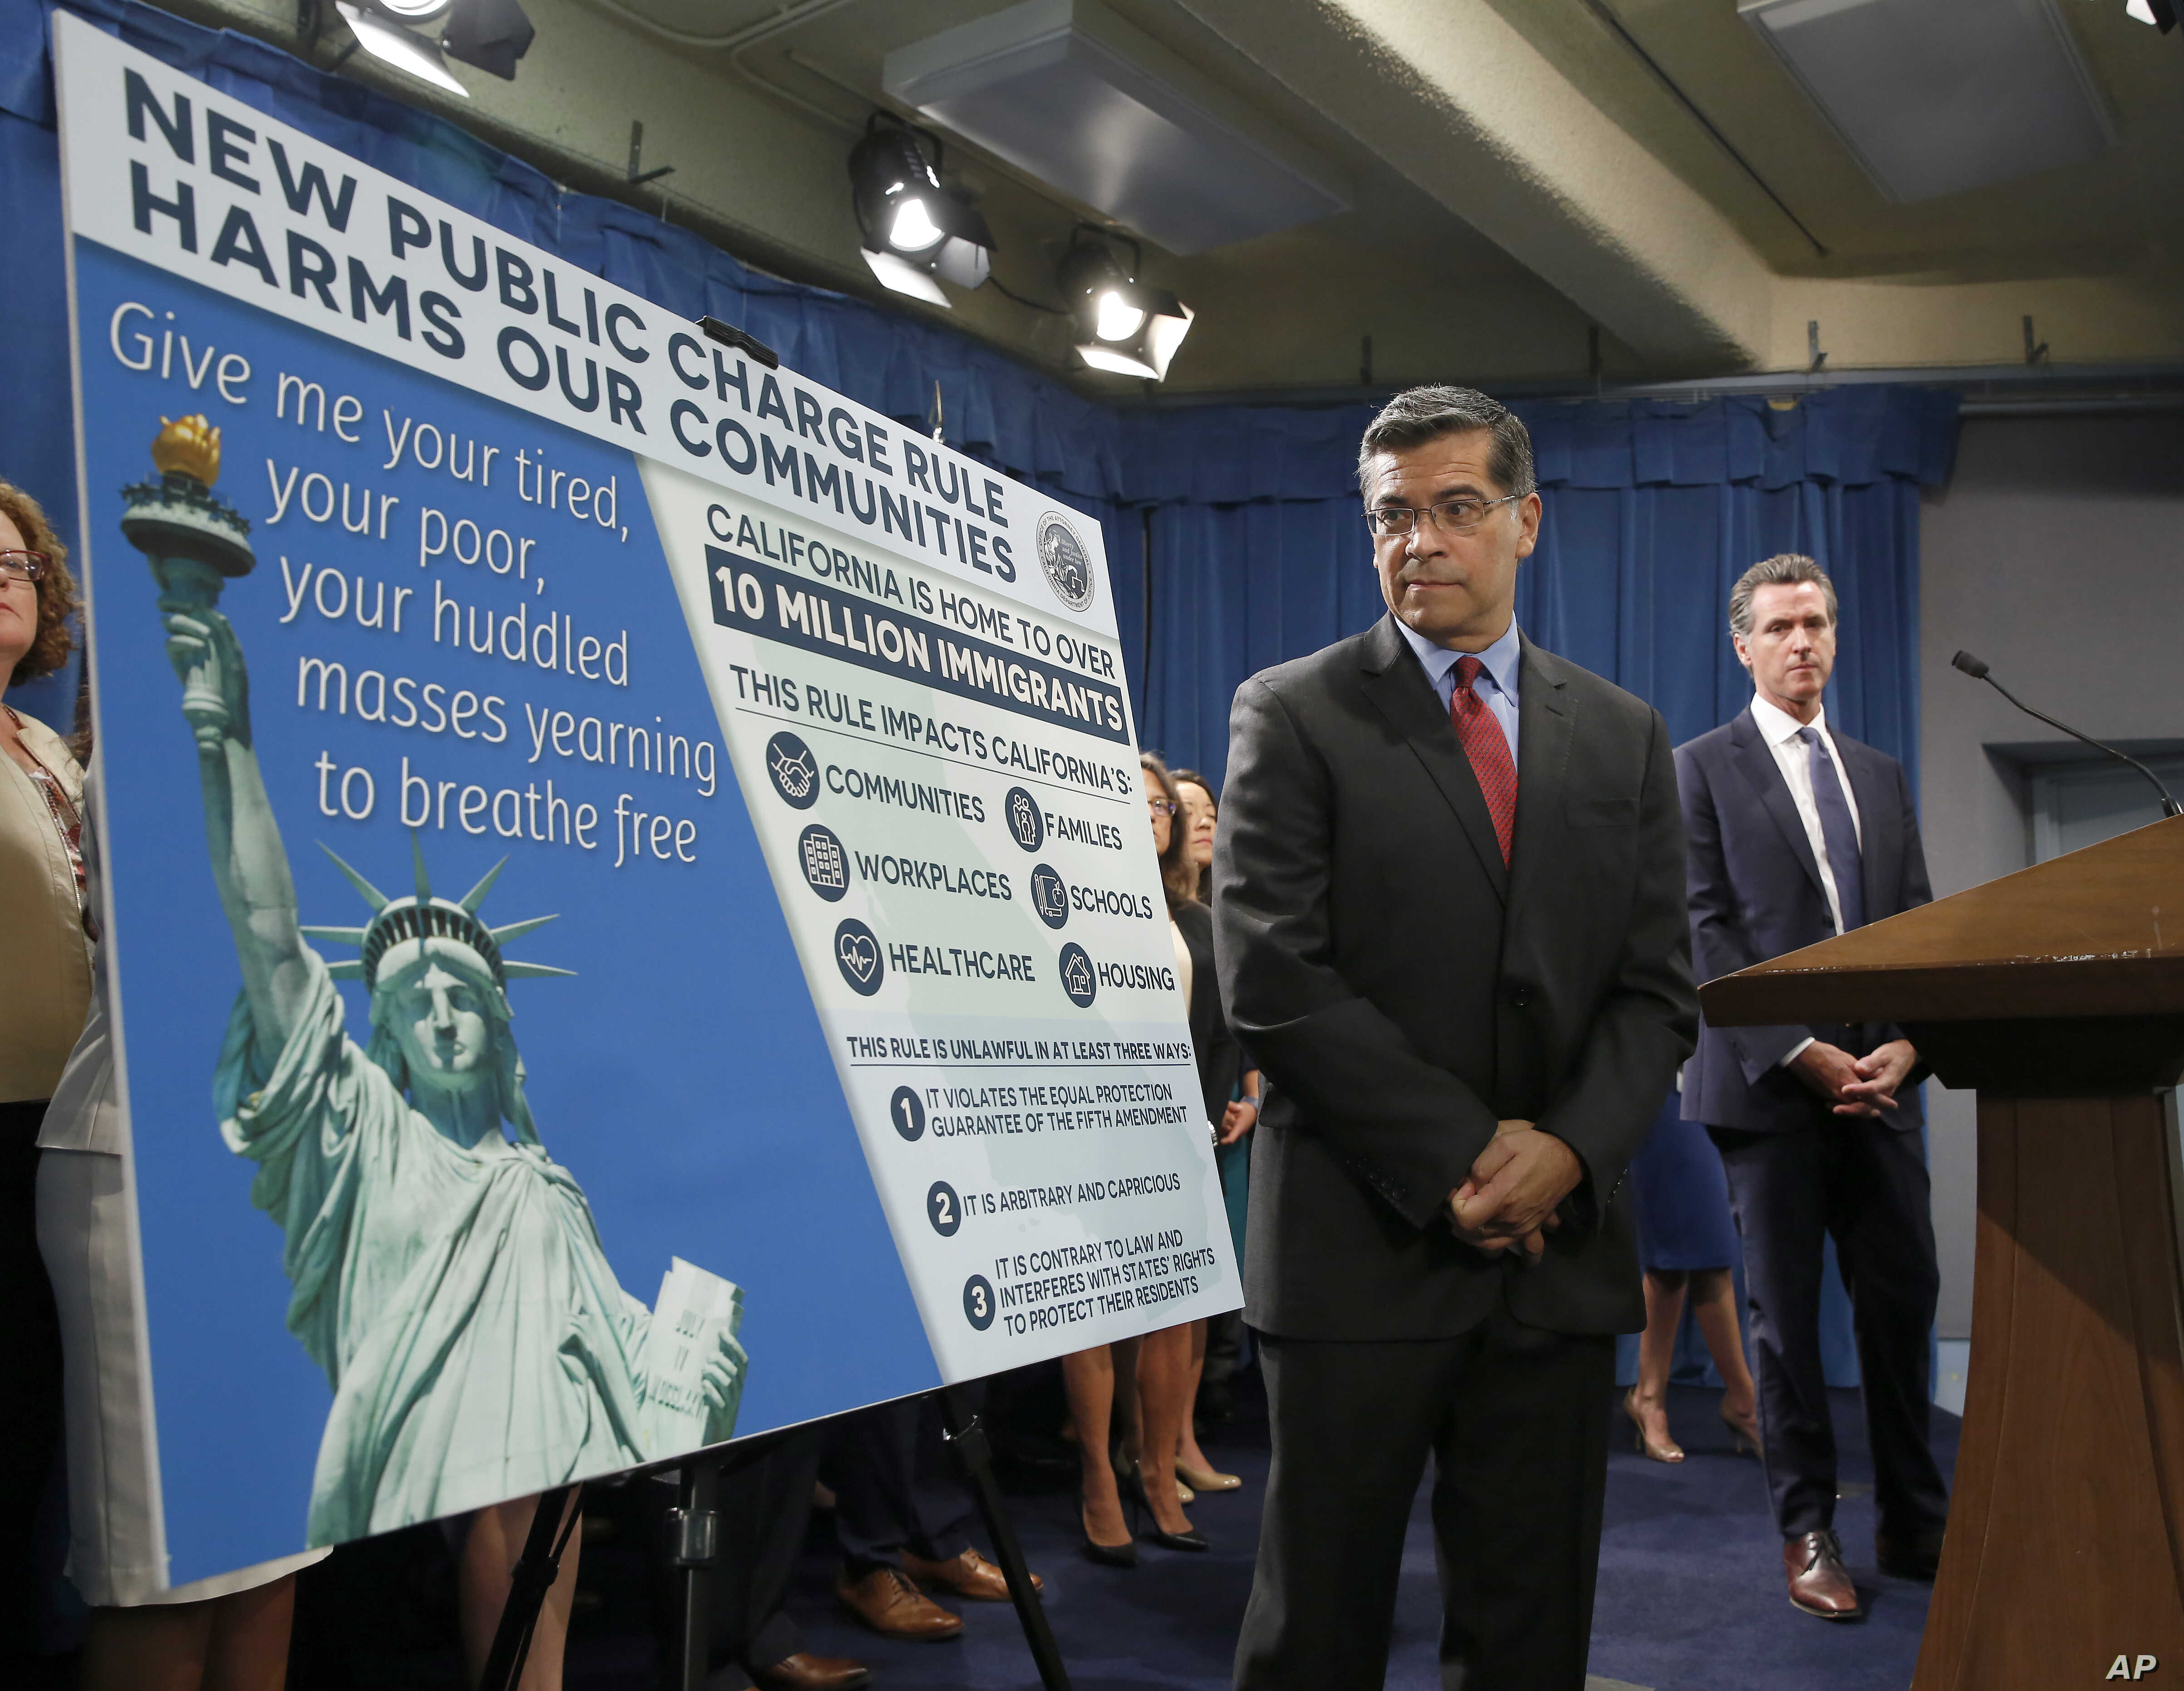 US Public Charge Rule: What Do Changes Mean for Immigrants